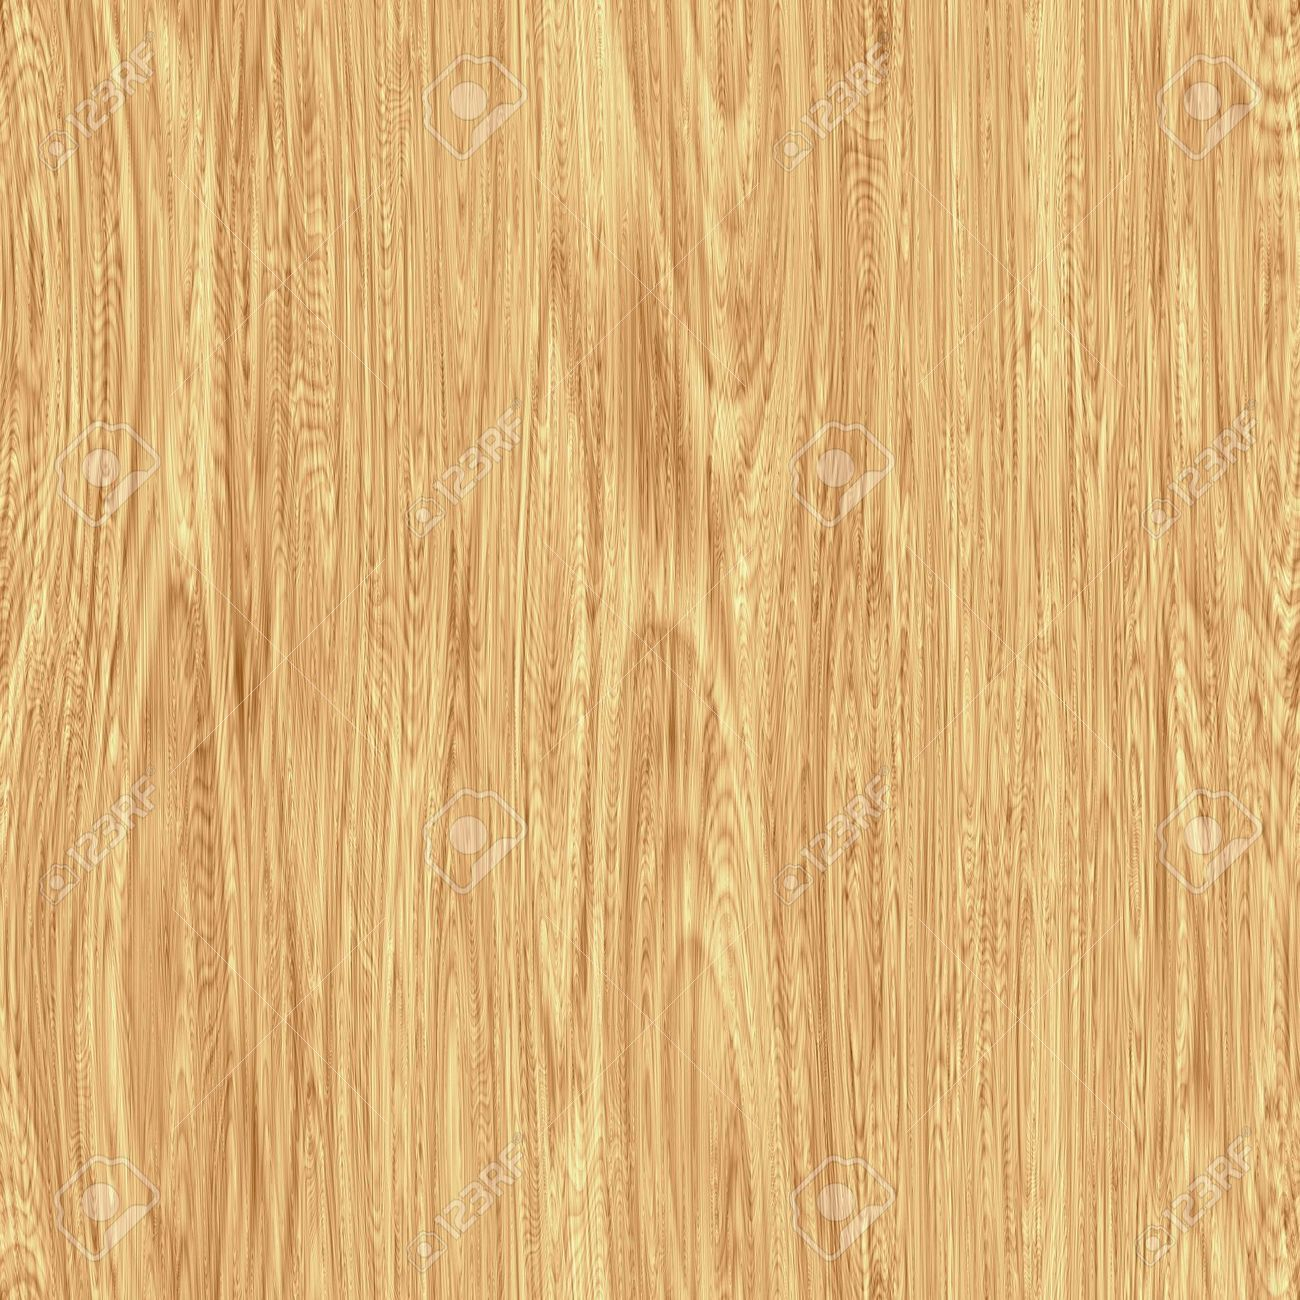 Wood Texture Seamless Google Search Surface References